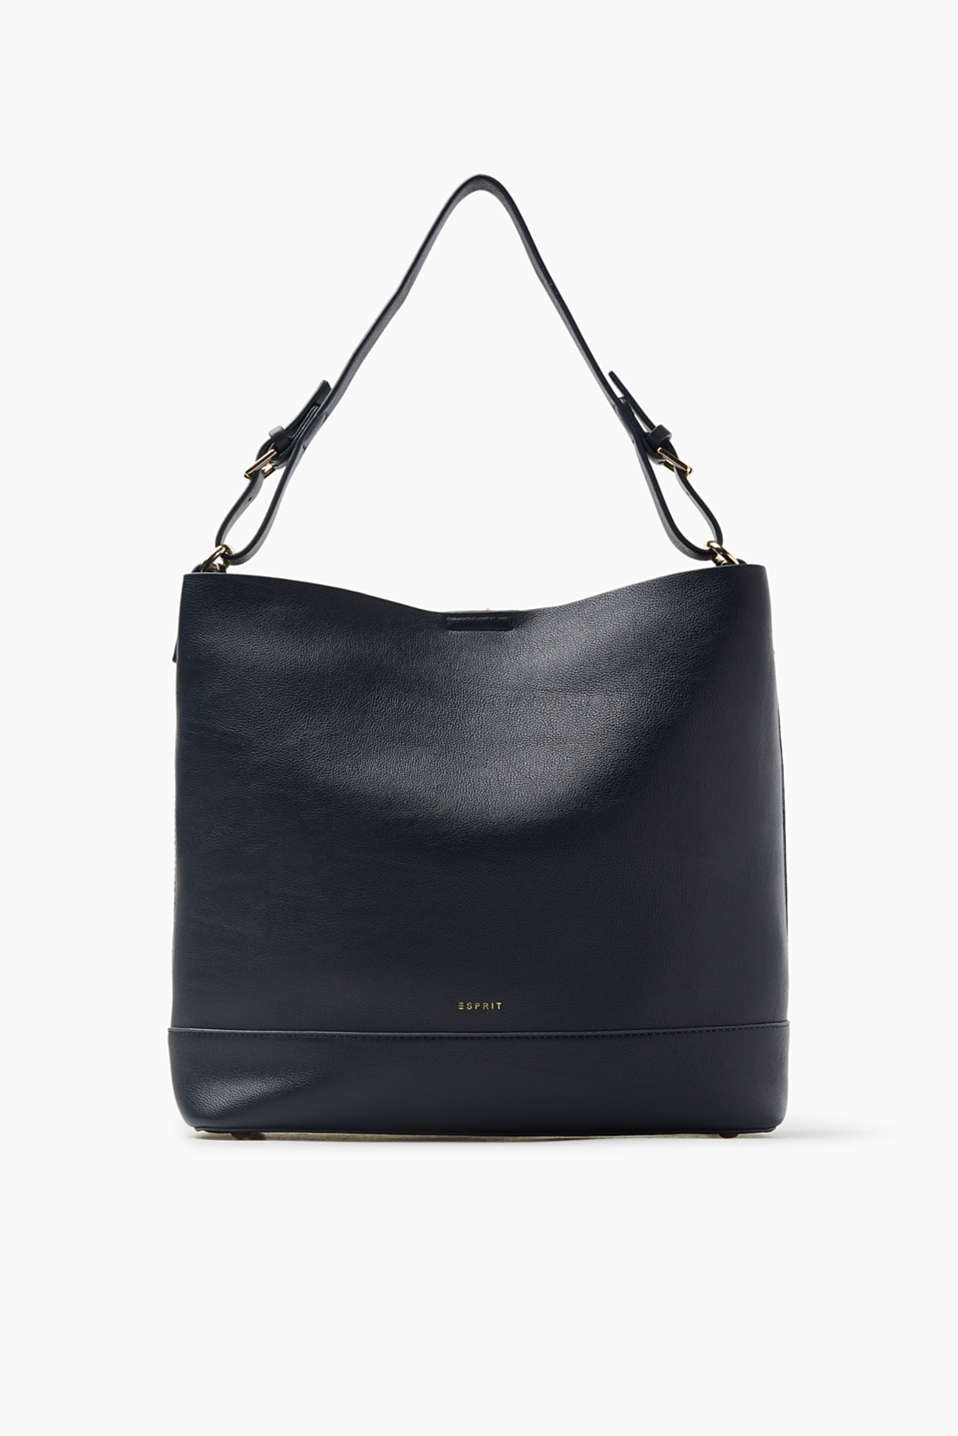 This faux leather hobo bag guarantees a cool and versatile look.